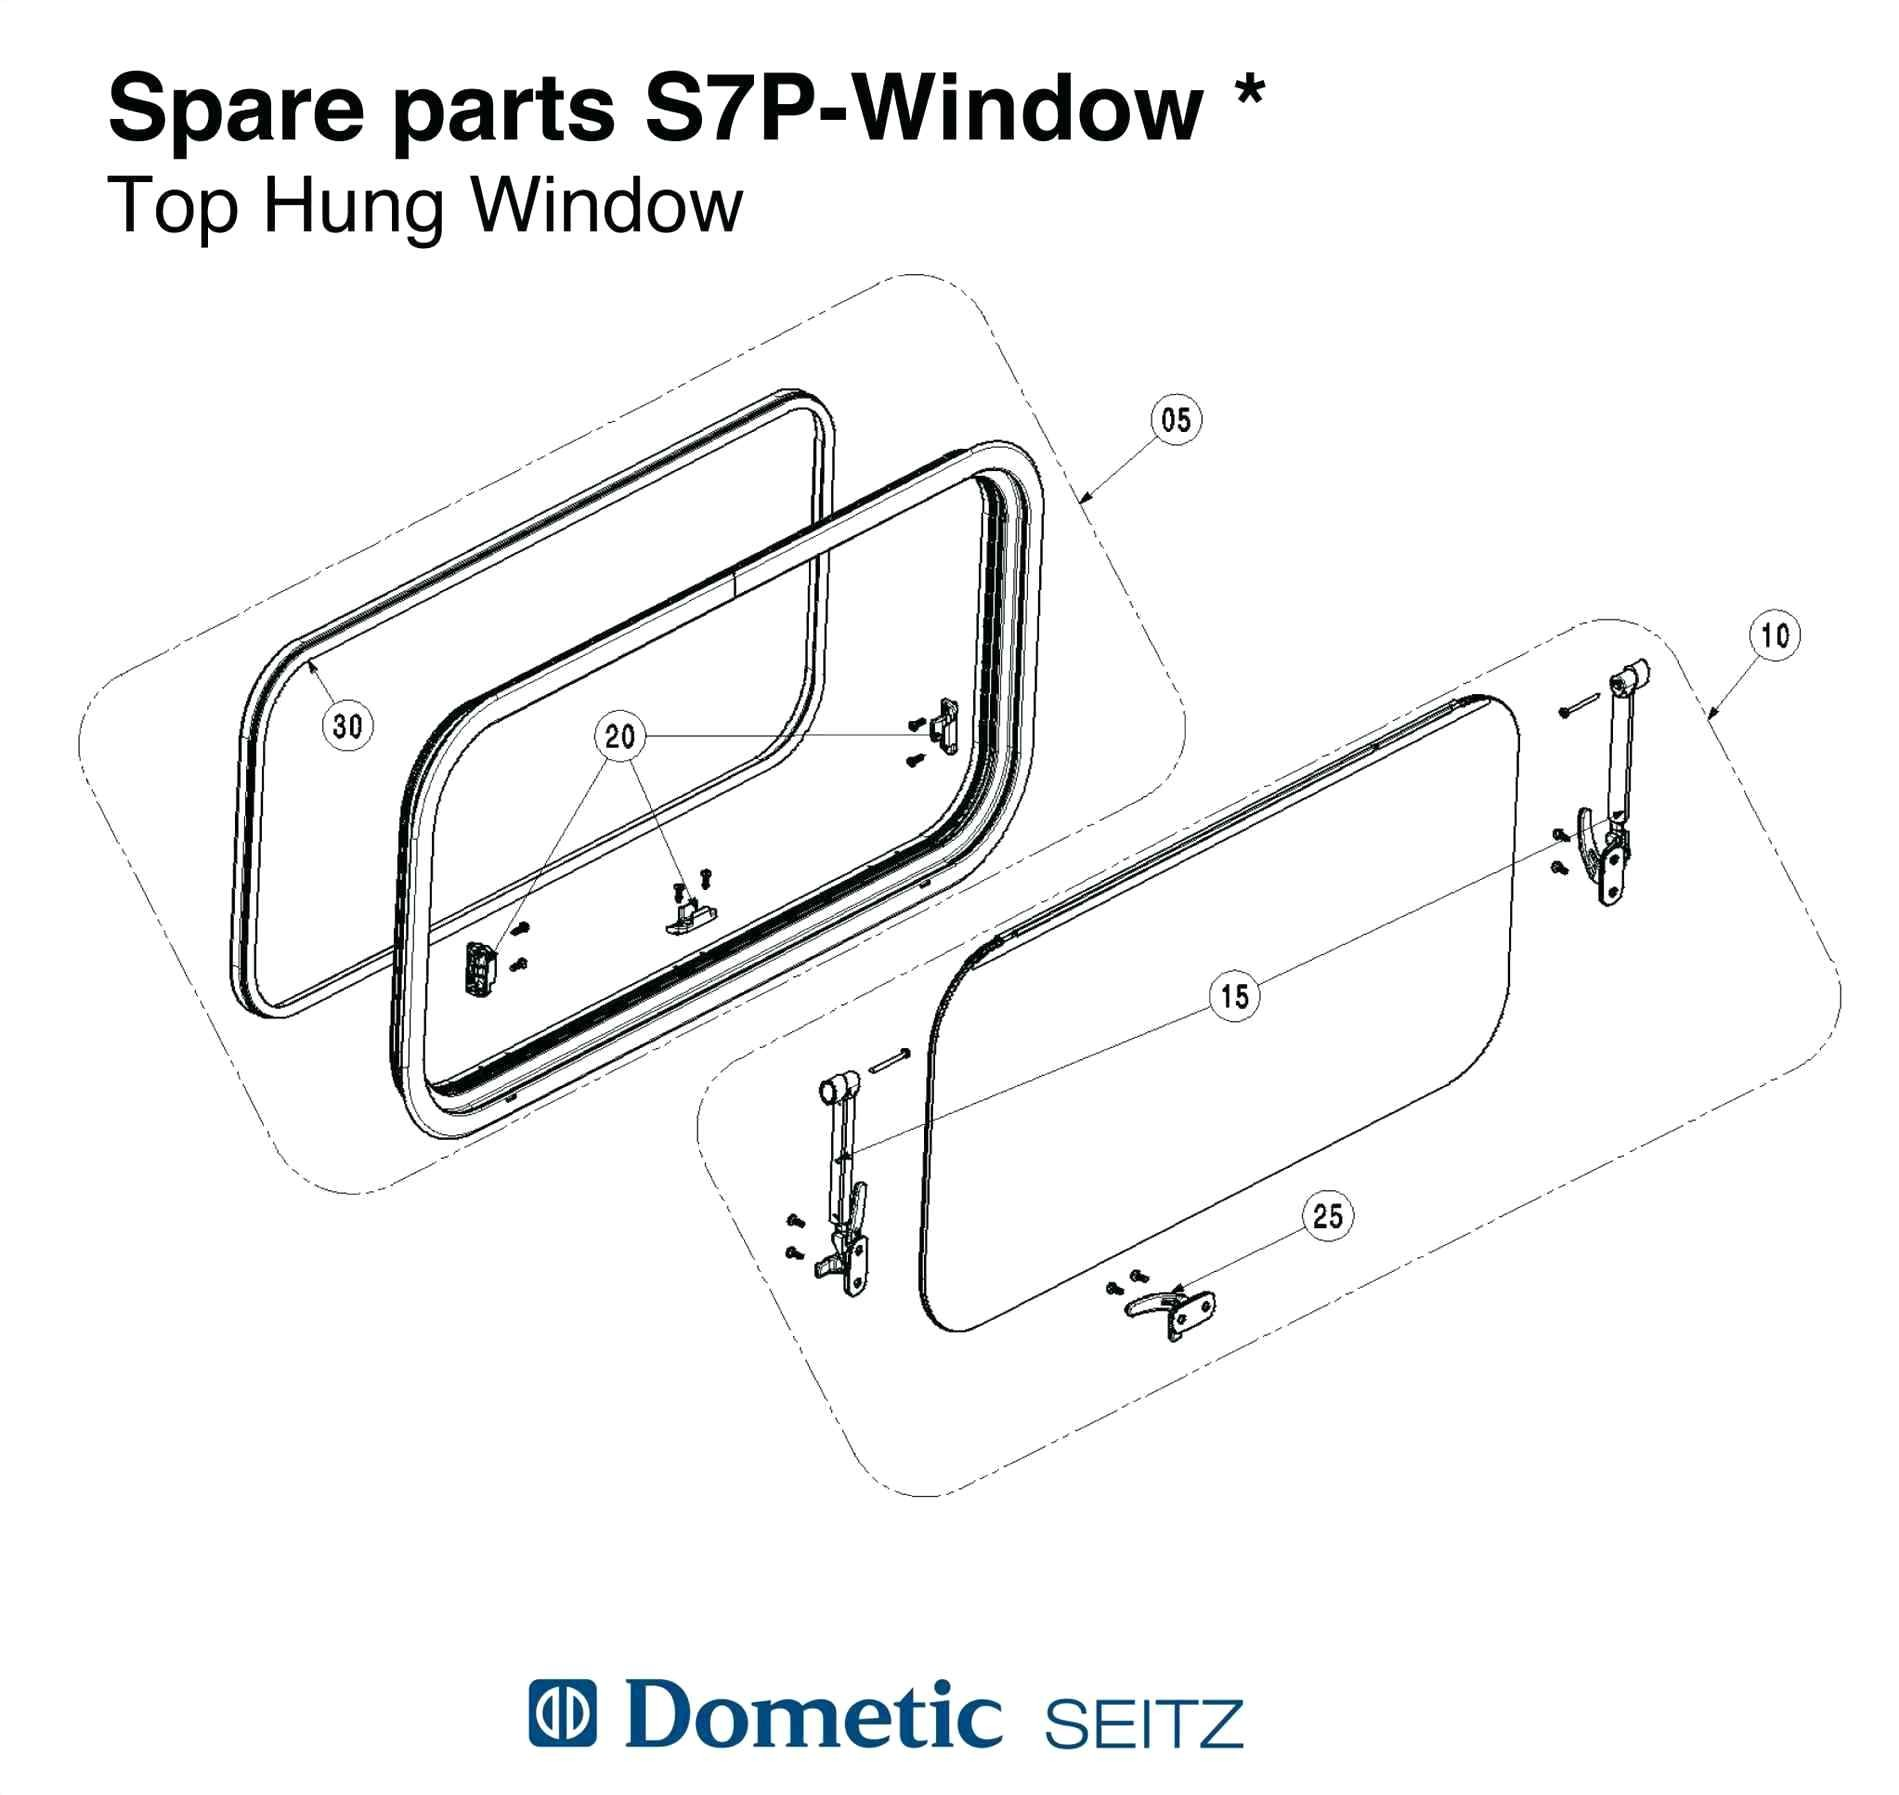 Carefree Awning Parts Diagram Sunsetter Awning Parts